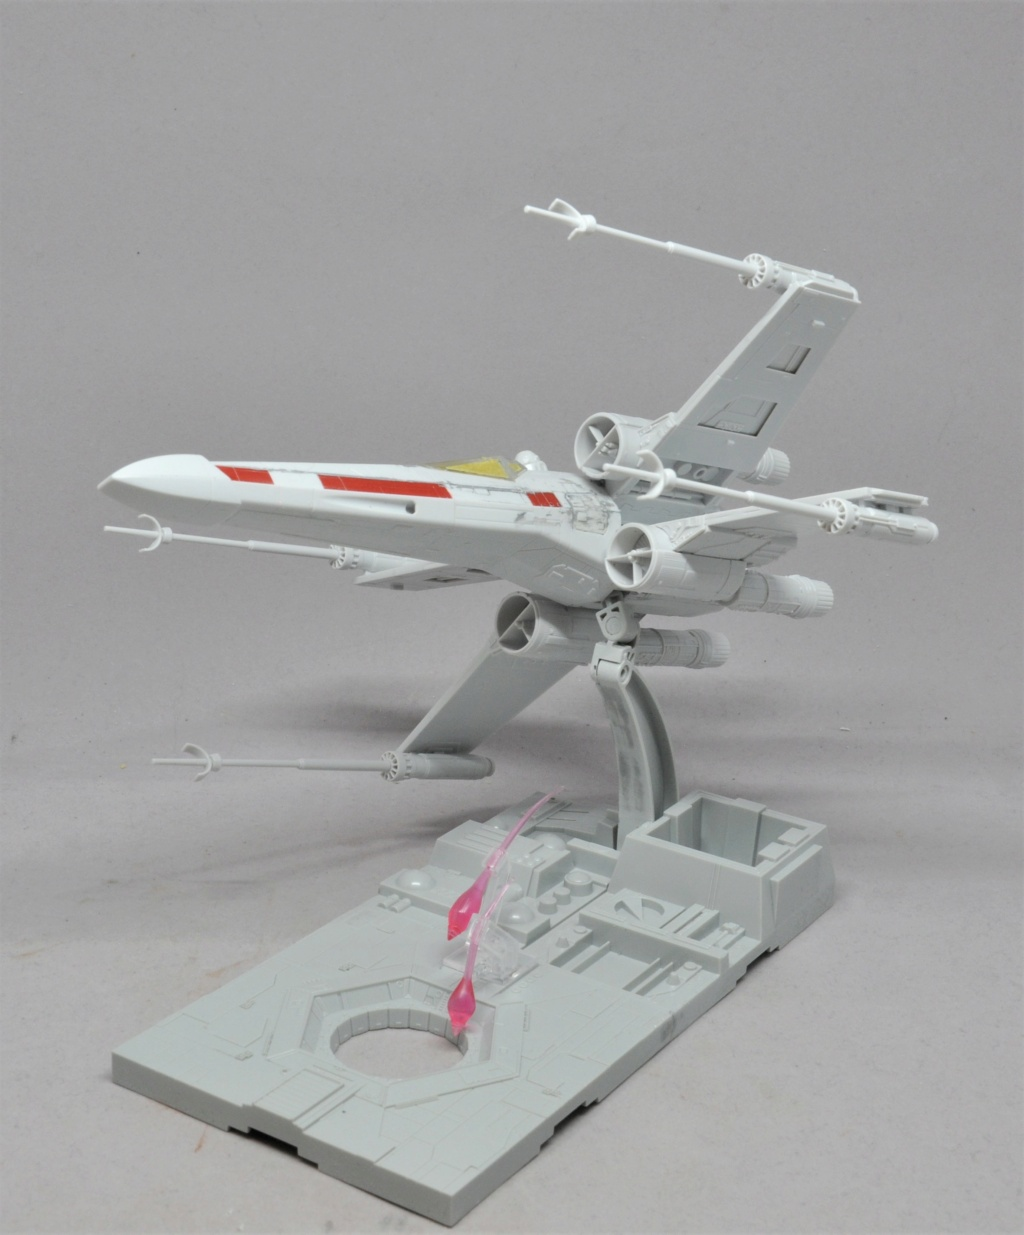 Star Wars X-Wing - Bandai 1/72 Dsc_1930